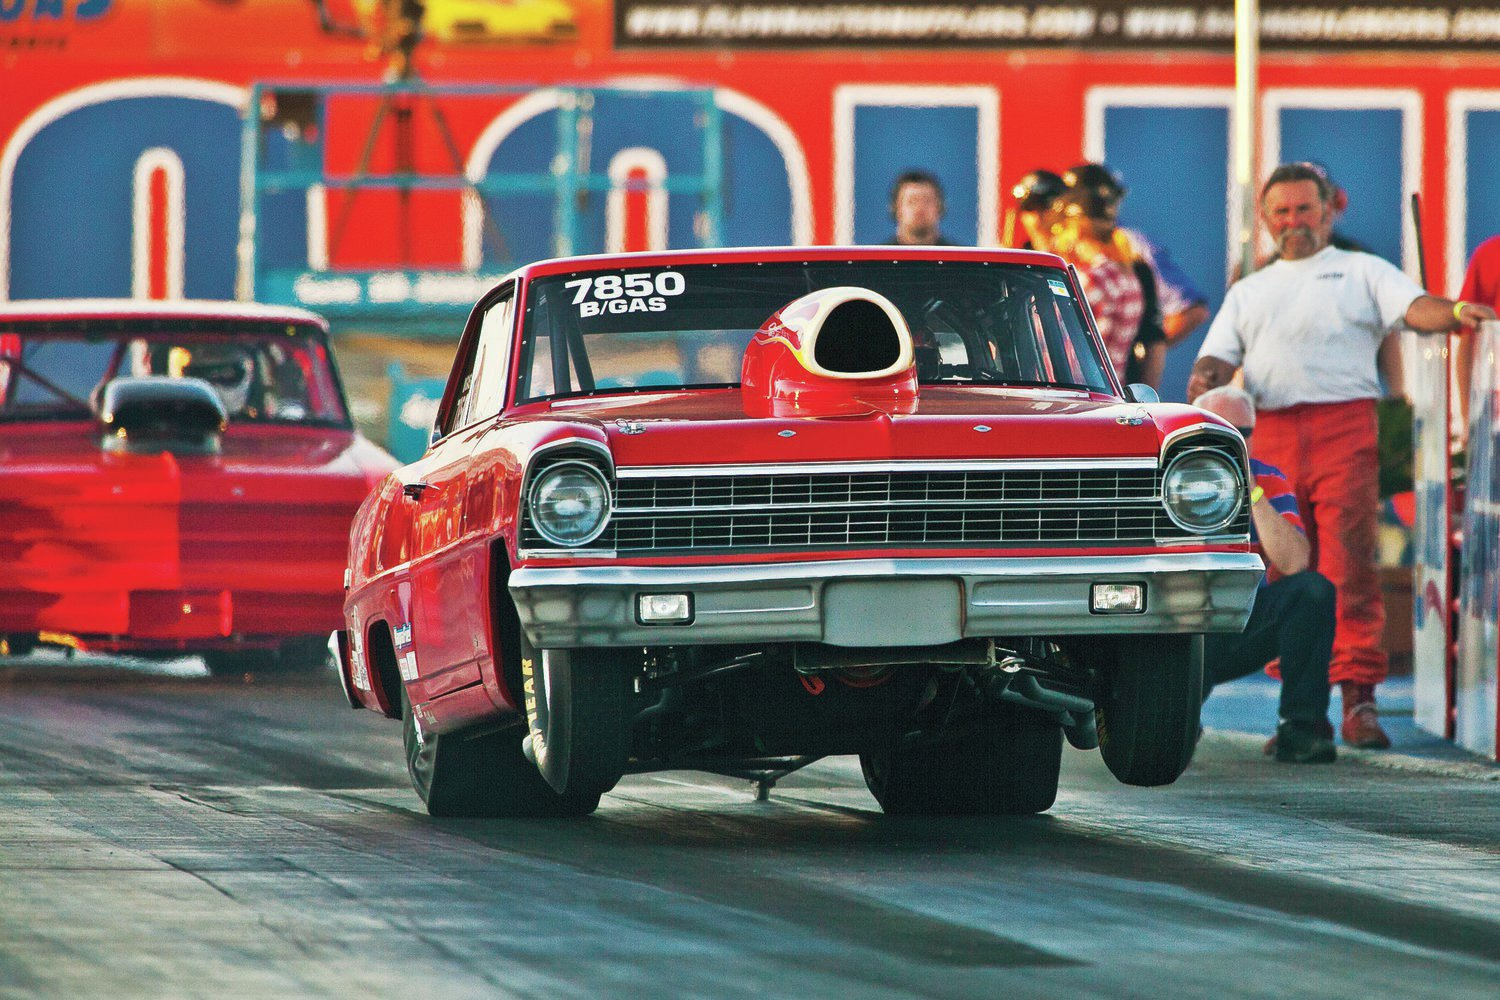 Besides fuelers and floppers, 500 vintage race cars attacked the Famoso grounds. Among the wheels-up door-slammers was Jim Stewart's '67 Nova.